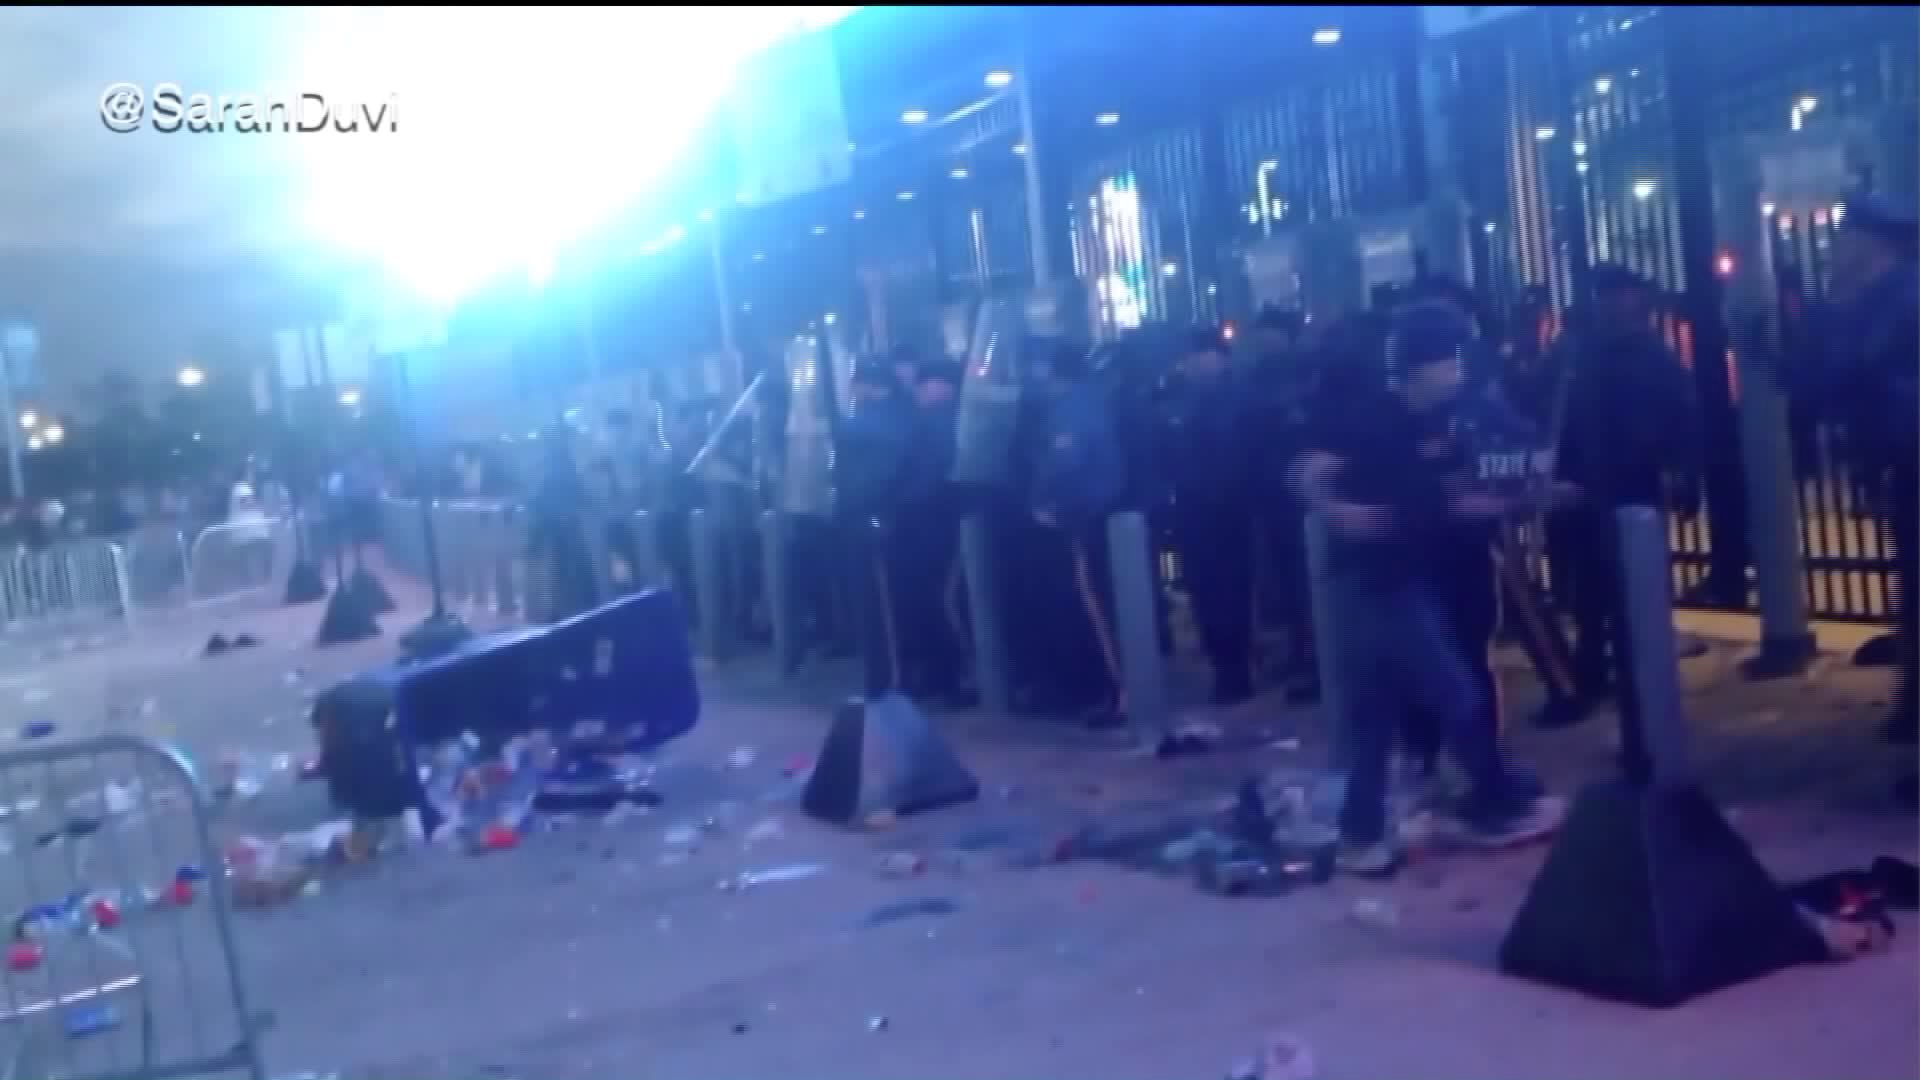 Police Reportedly Use Tear Gas as Concert Erupts Into Chaos